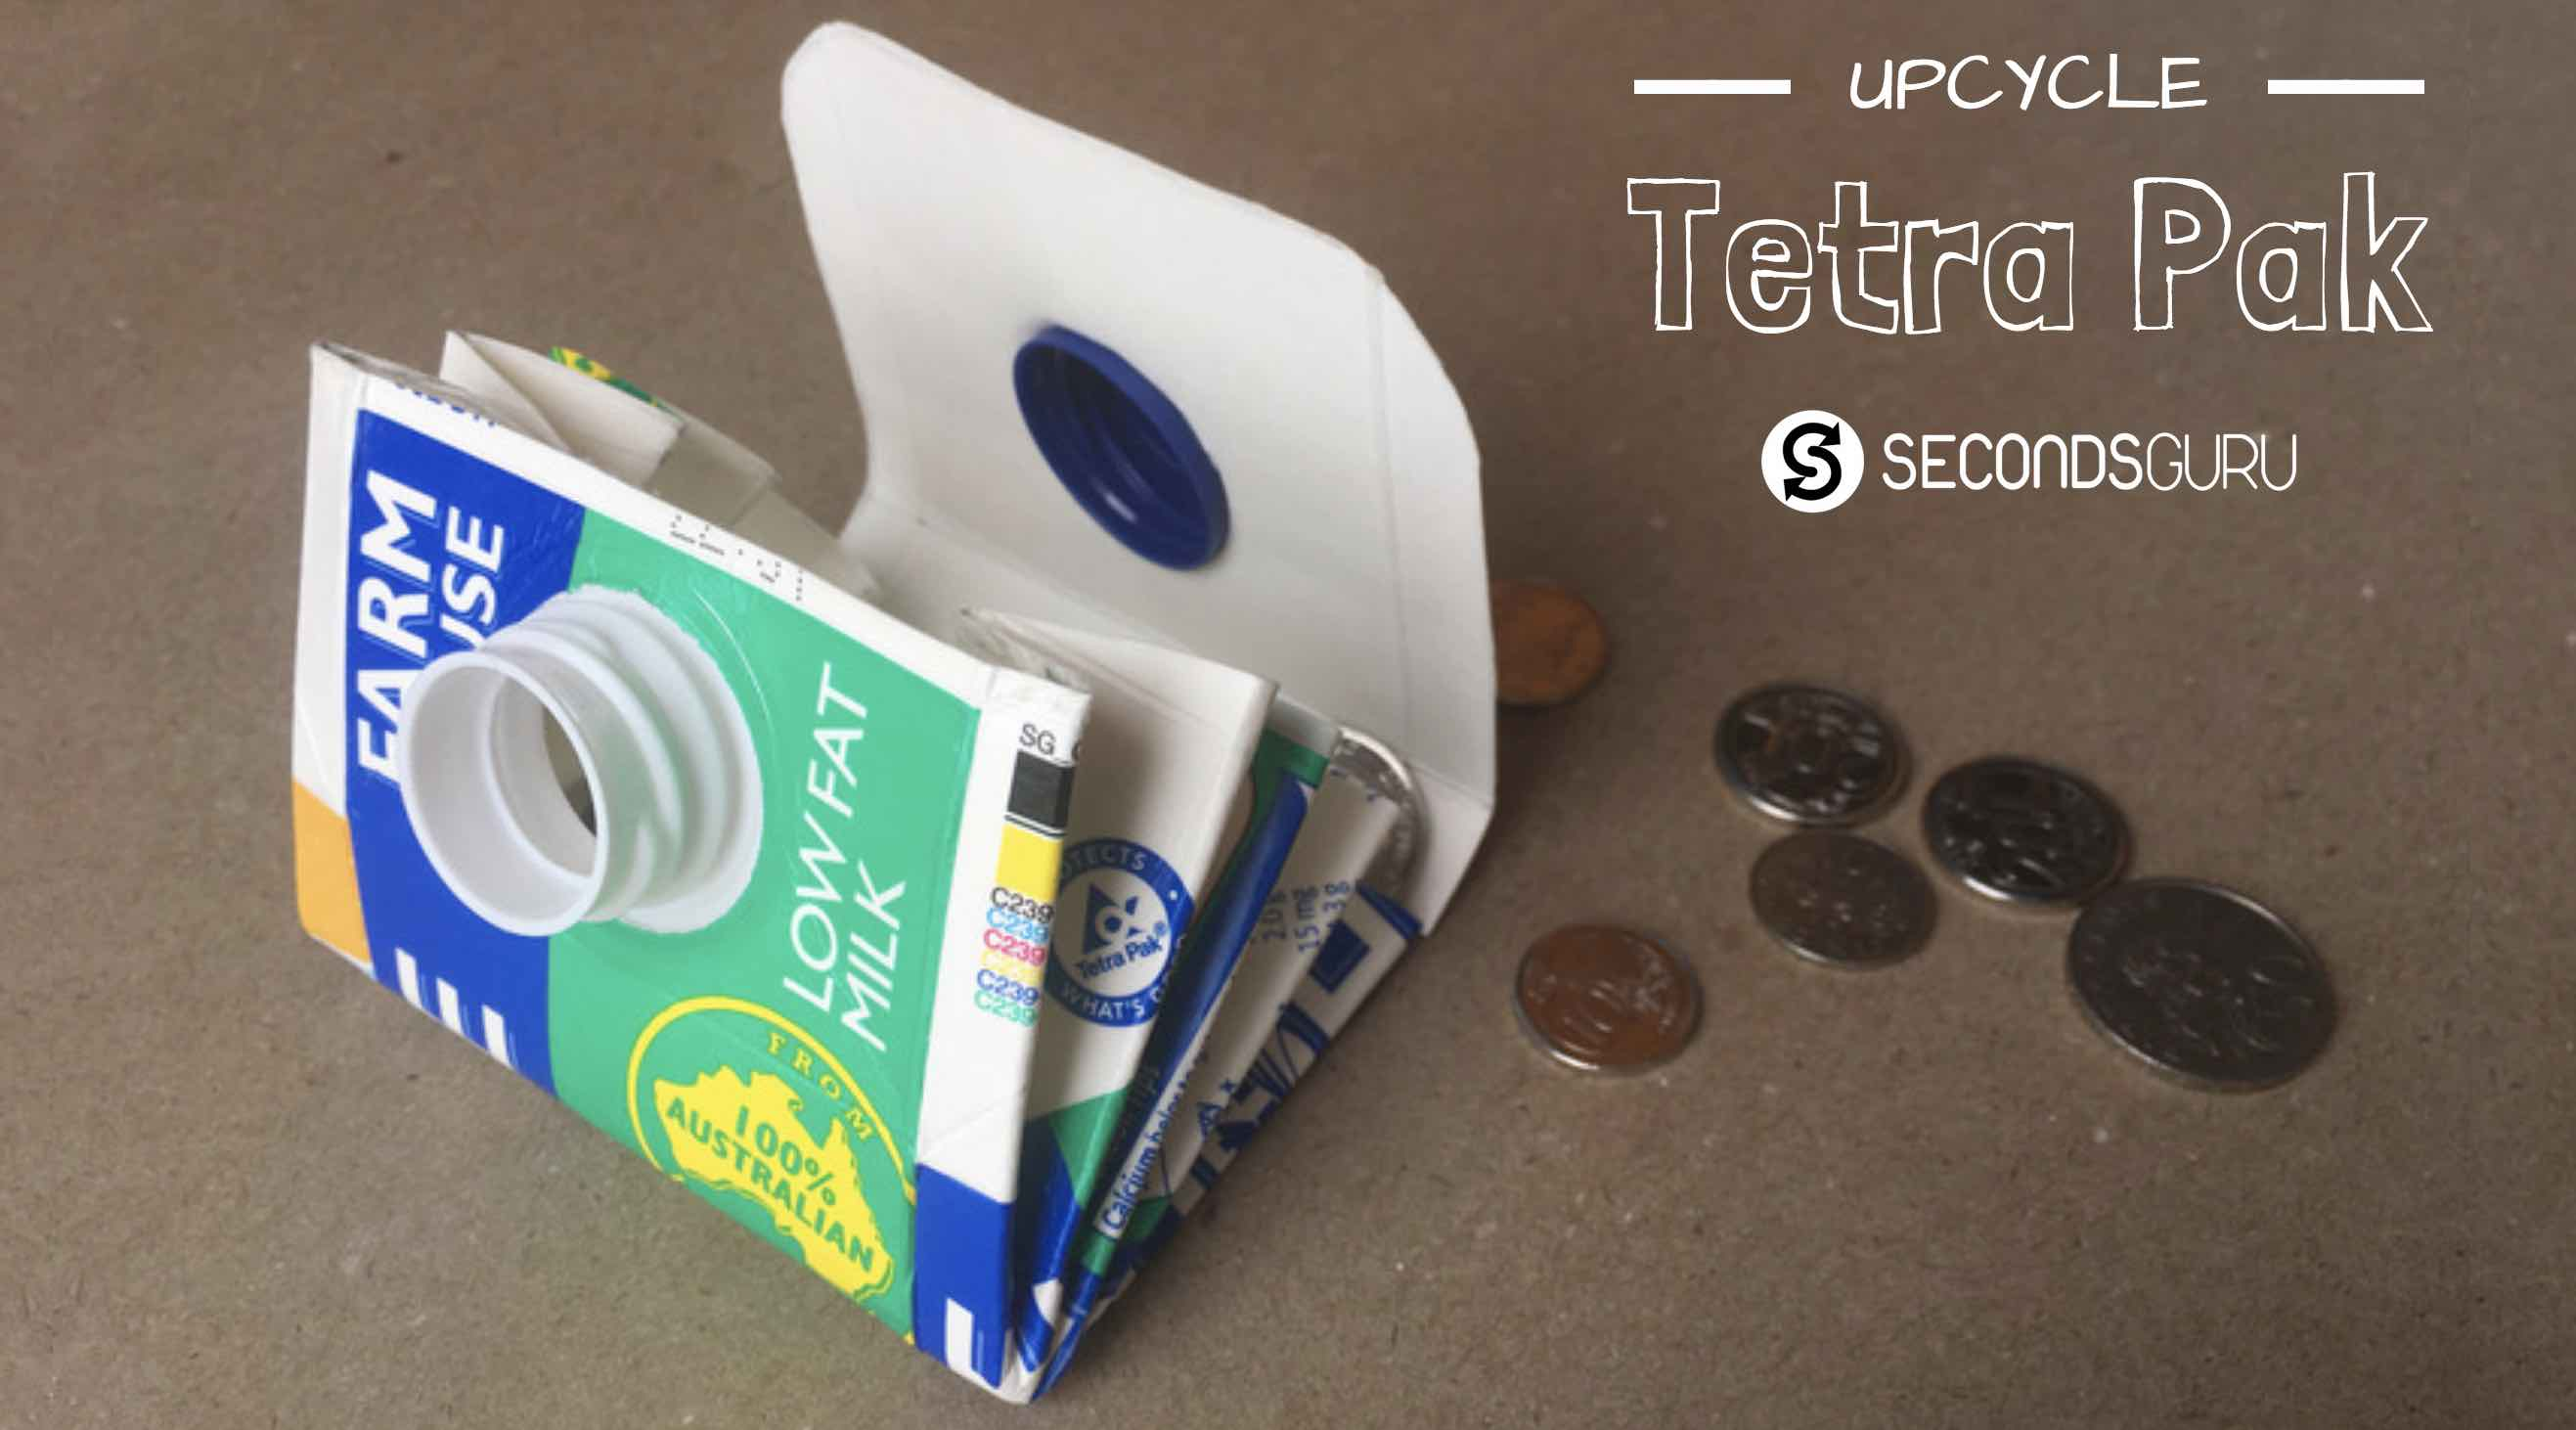 tetra pak upcycle milk carton